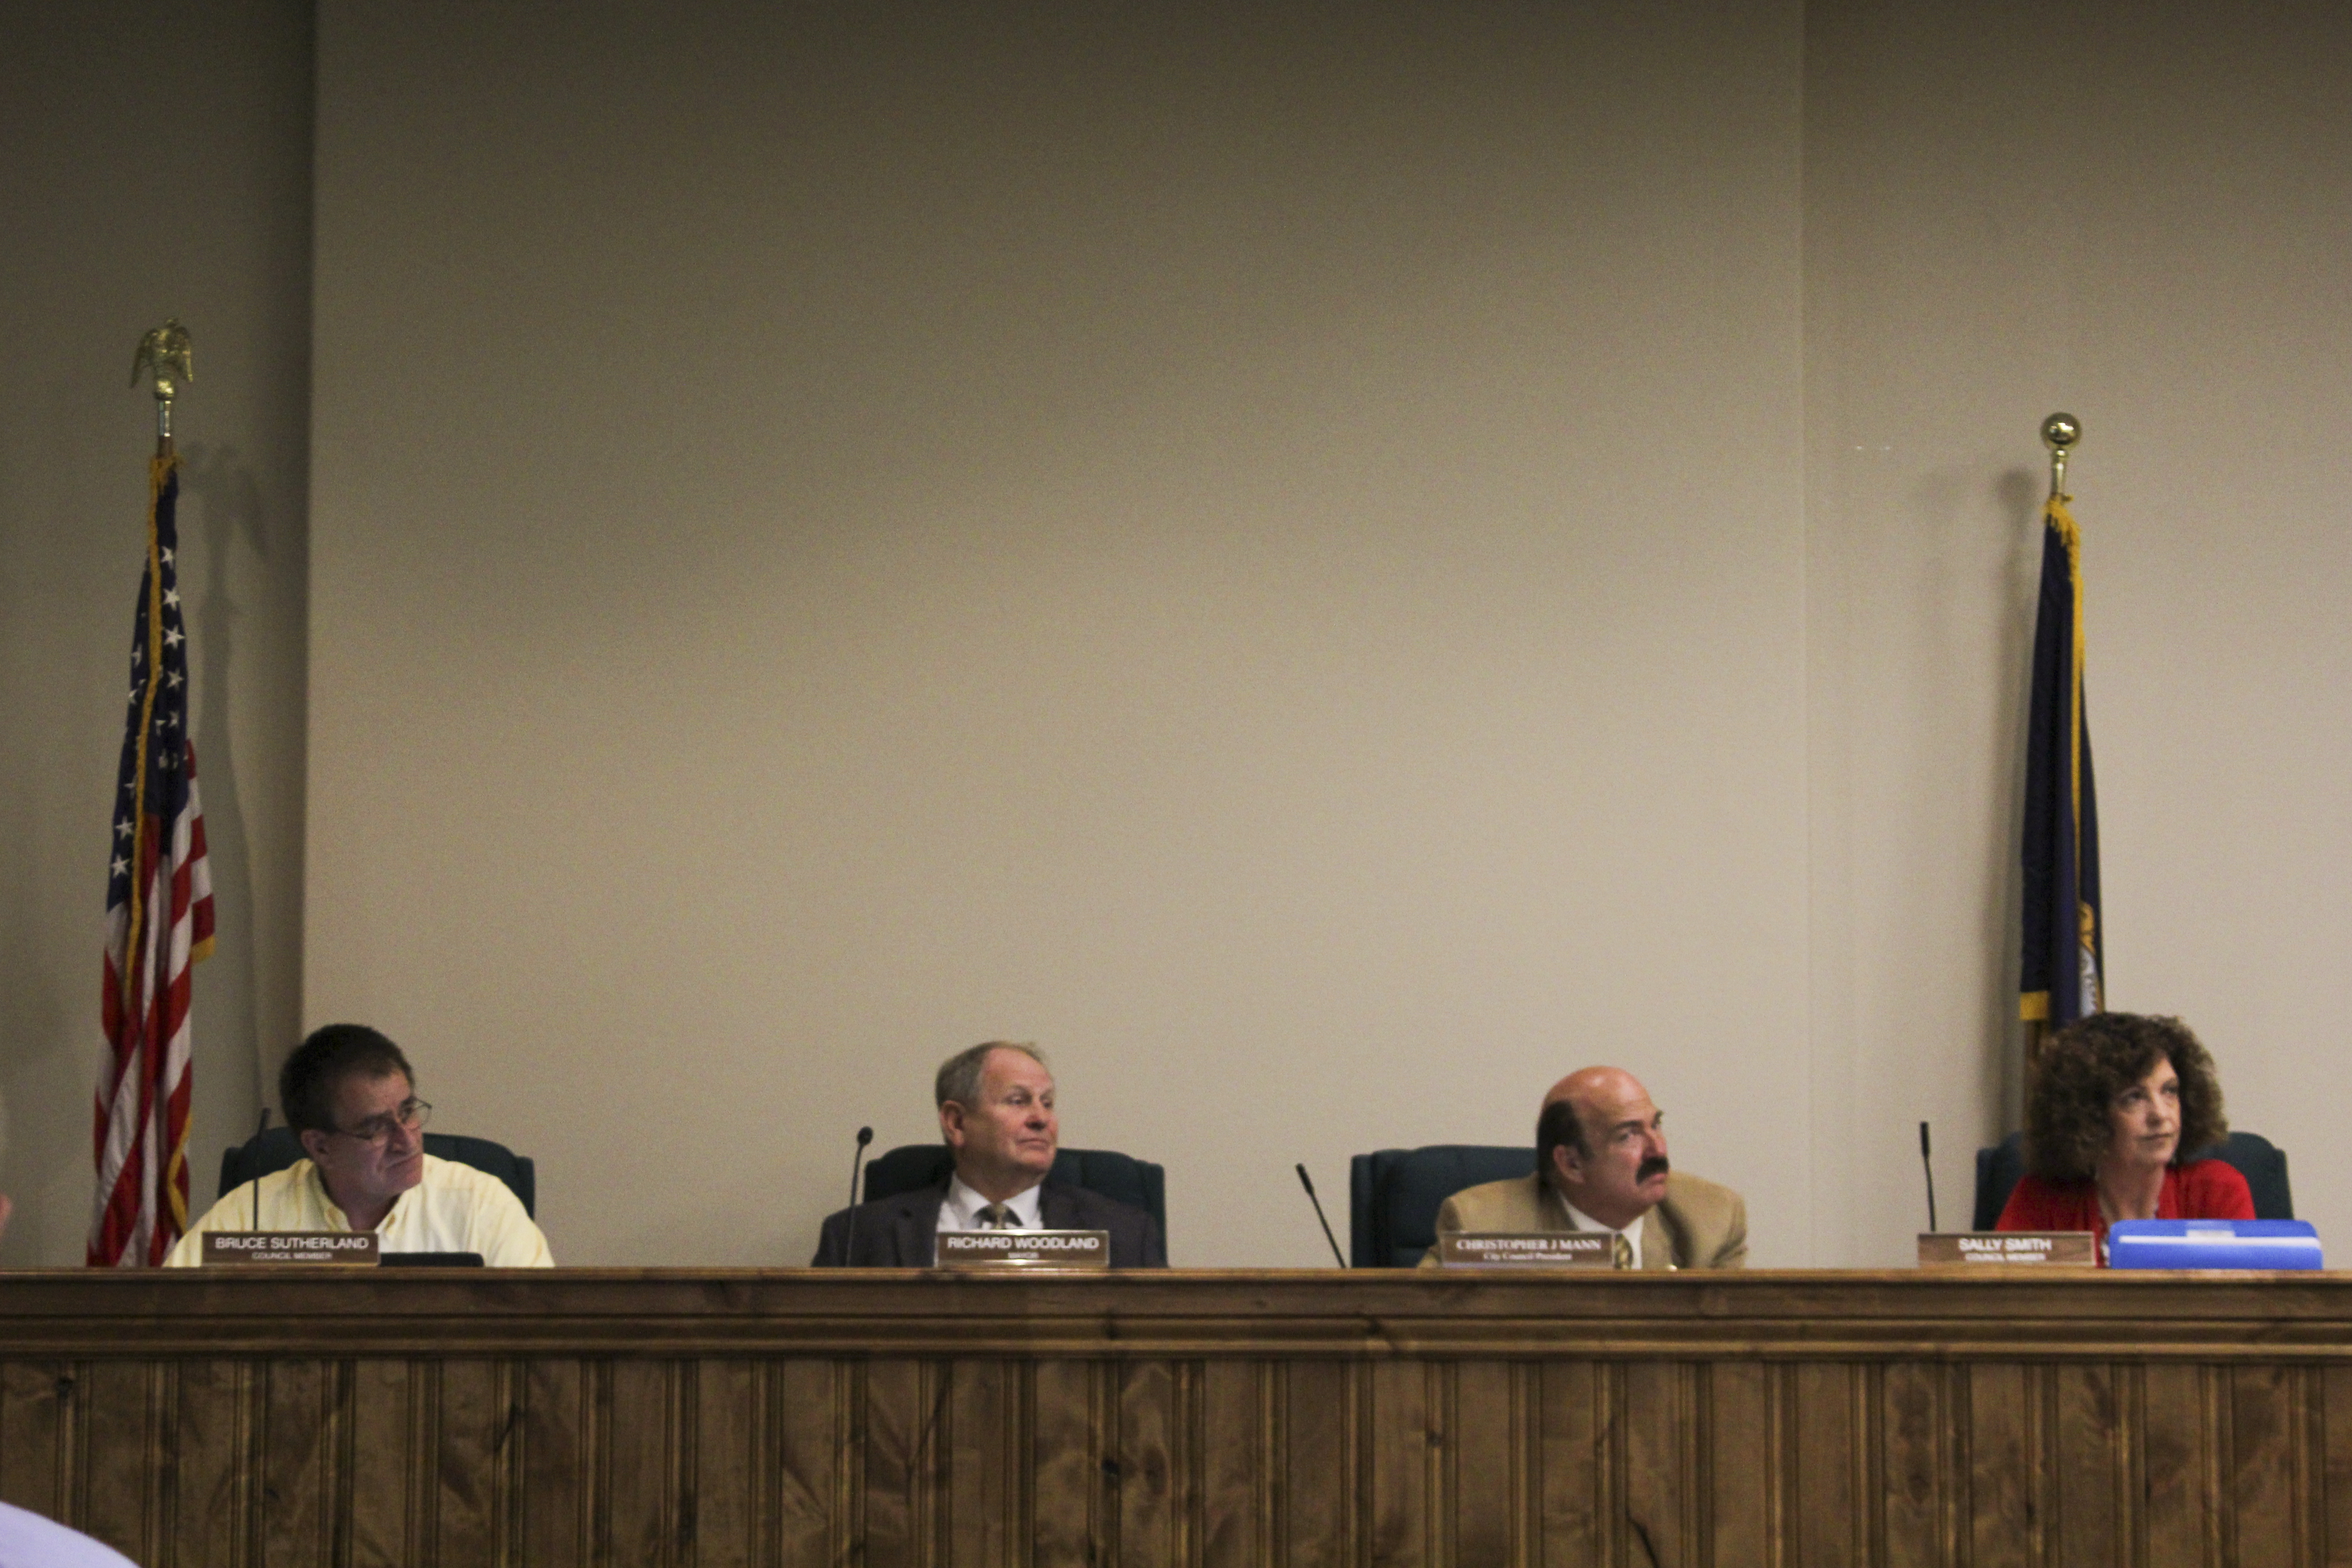 Rexburg welcomes City Council members after election